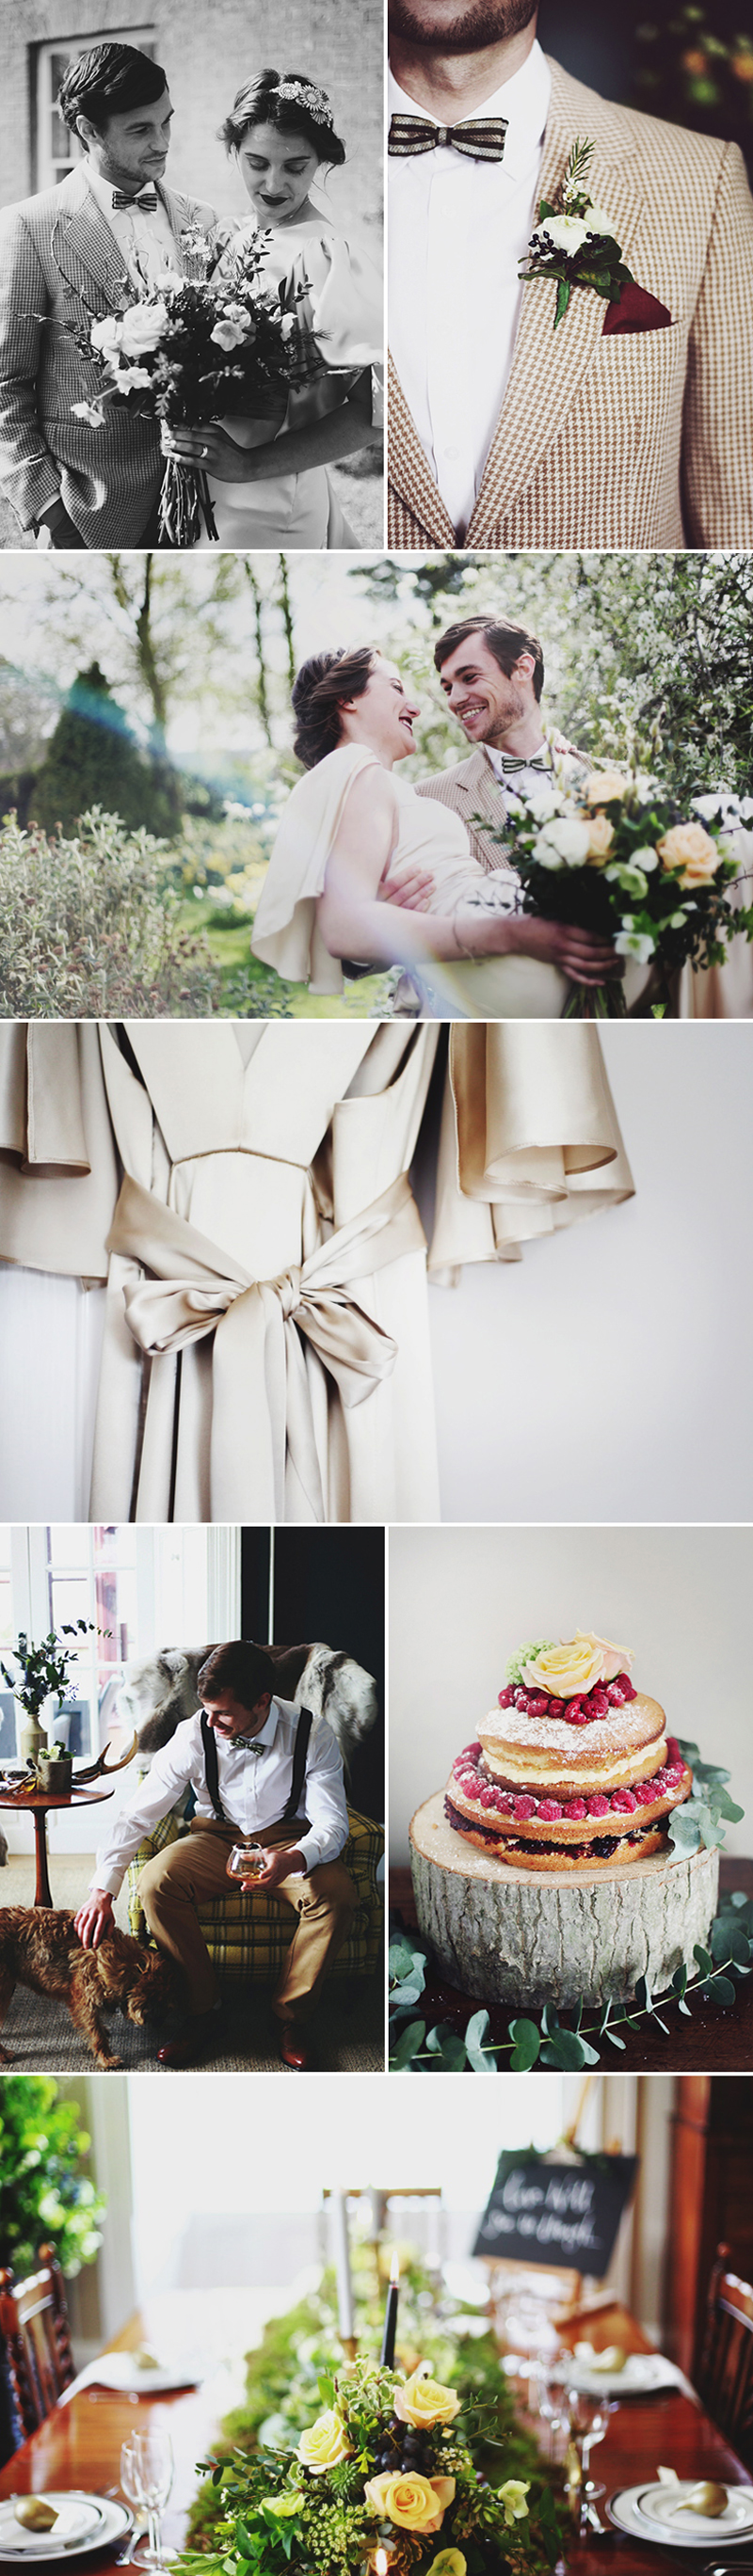 modern-vintage-wedding-inspiration-norfolk-wedding-venue-godwick-hall-the-little-lending-co-coco-wedding-venues-002